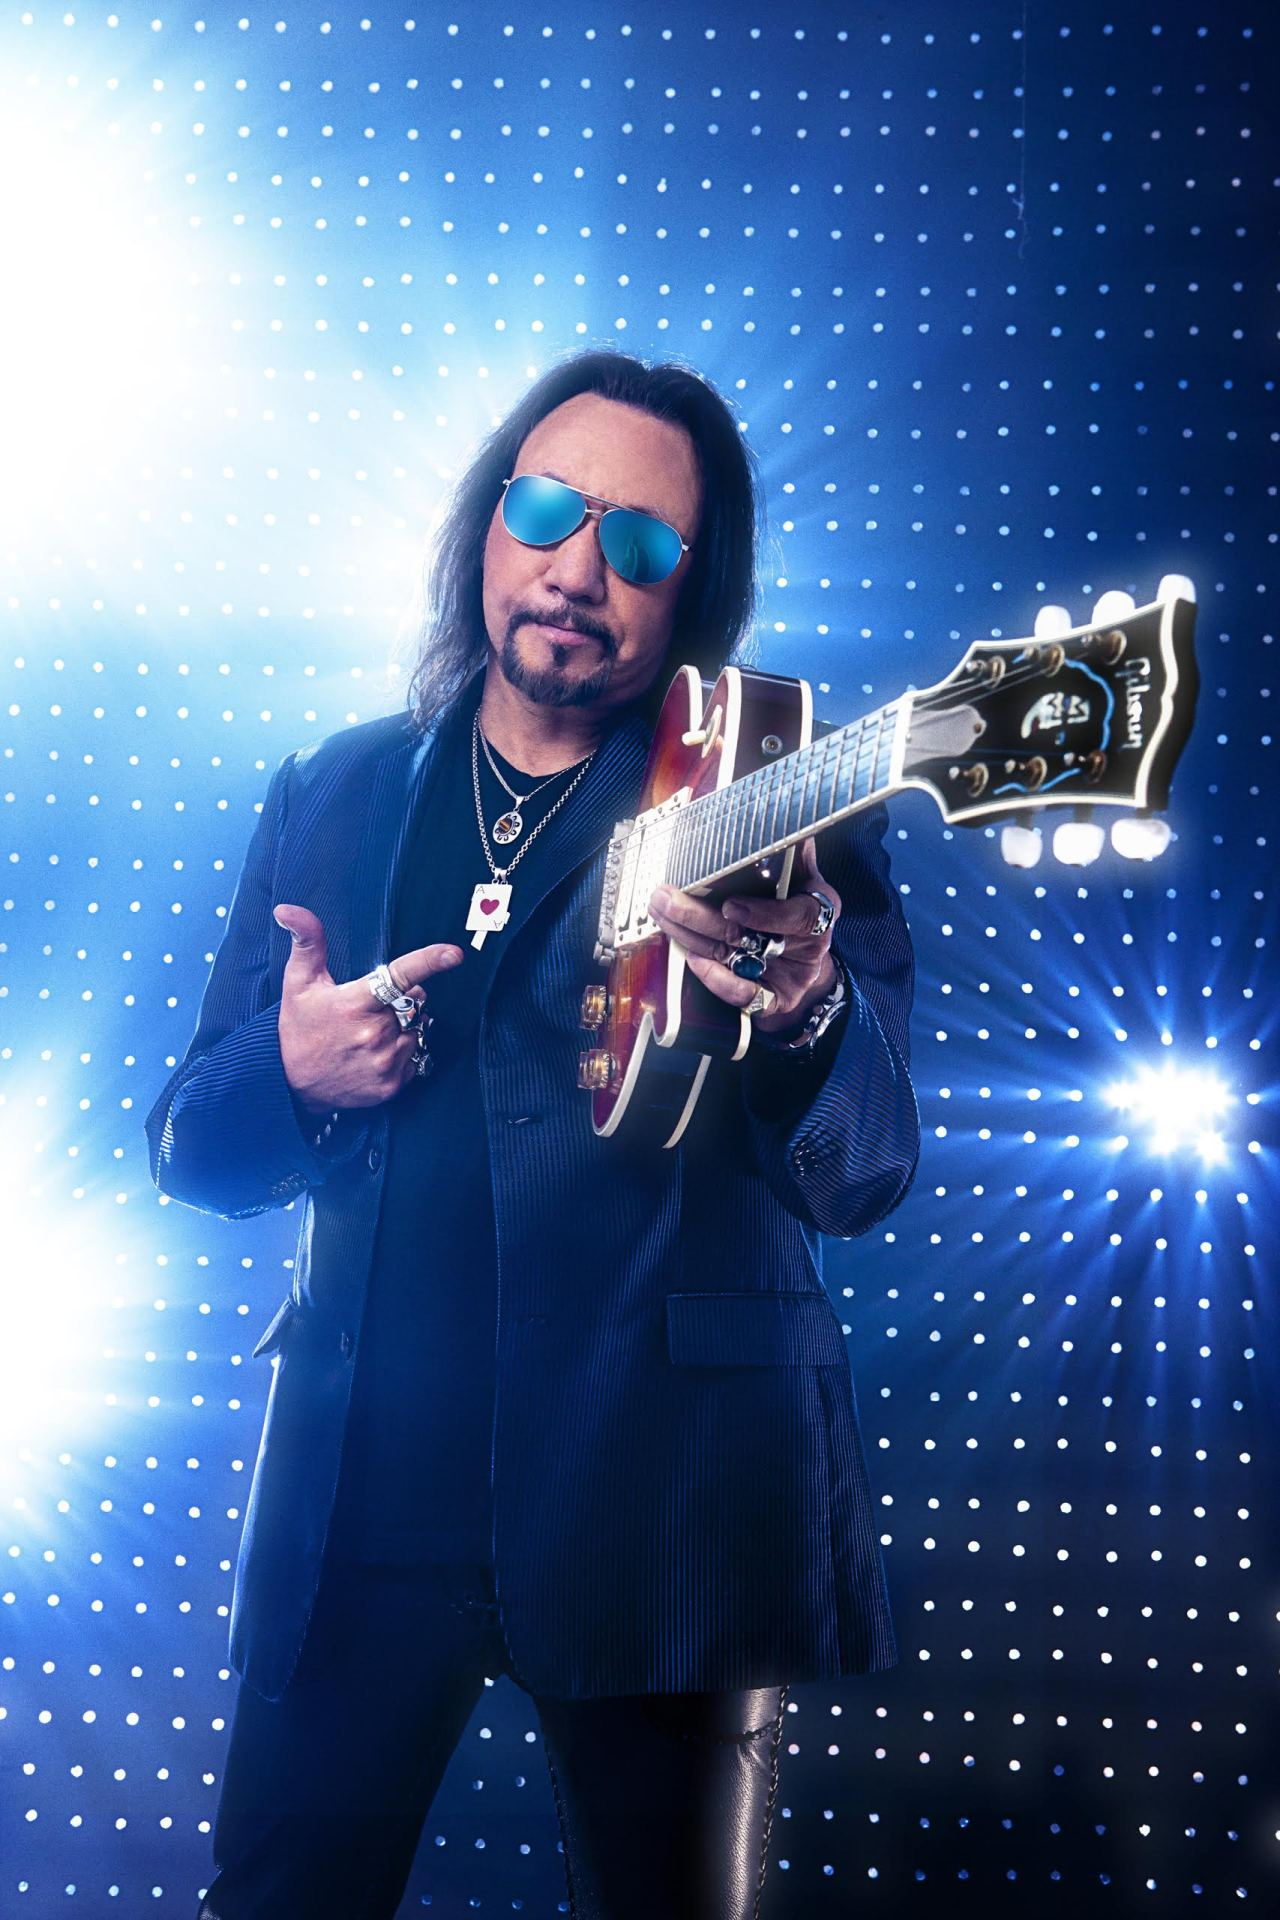 Ace Frehley styled by Judi Longo